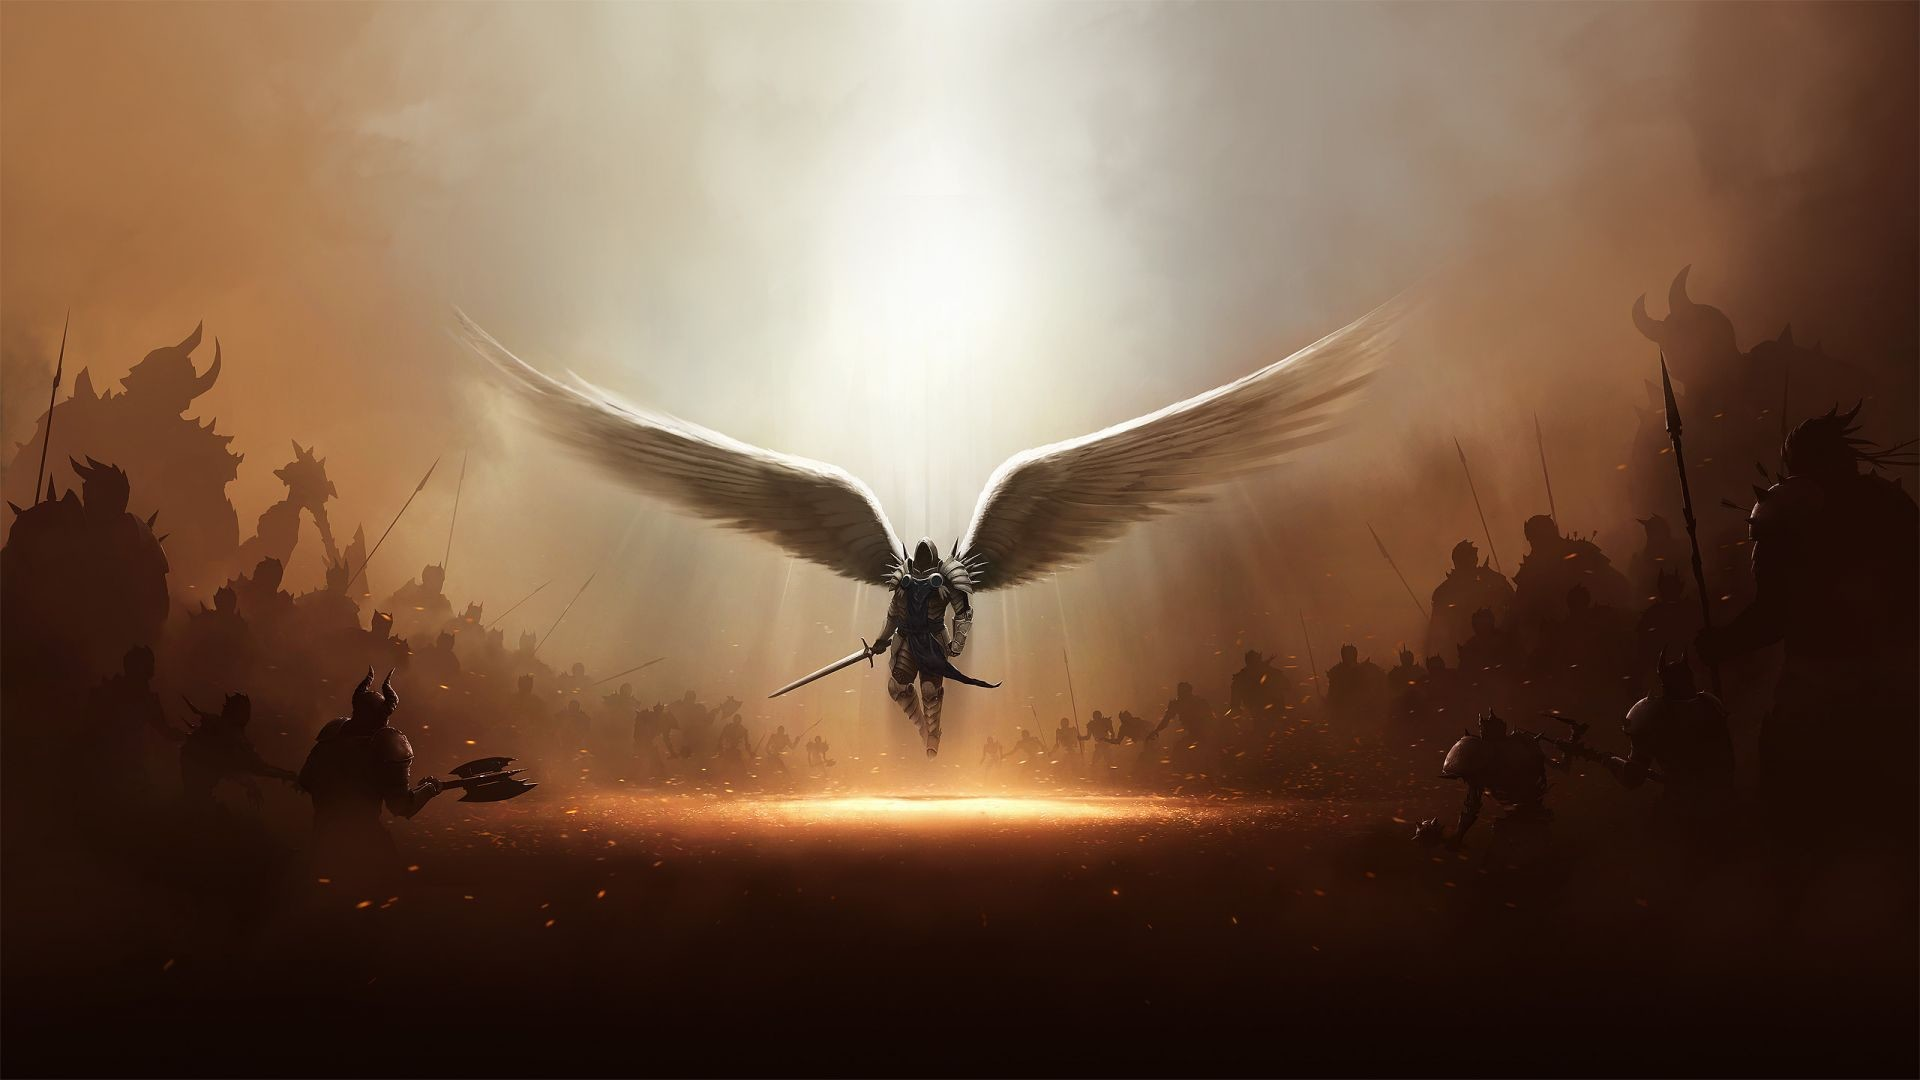 1920x1080 Collection of Animated Angel Wallpaper on HDWallpapers 1920×1080 Angel  Wallpaper (54 Wallpapers)